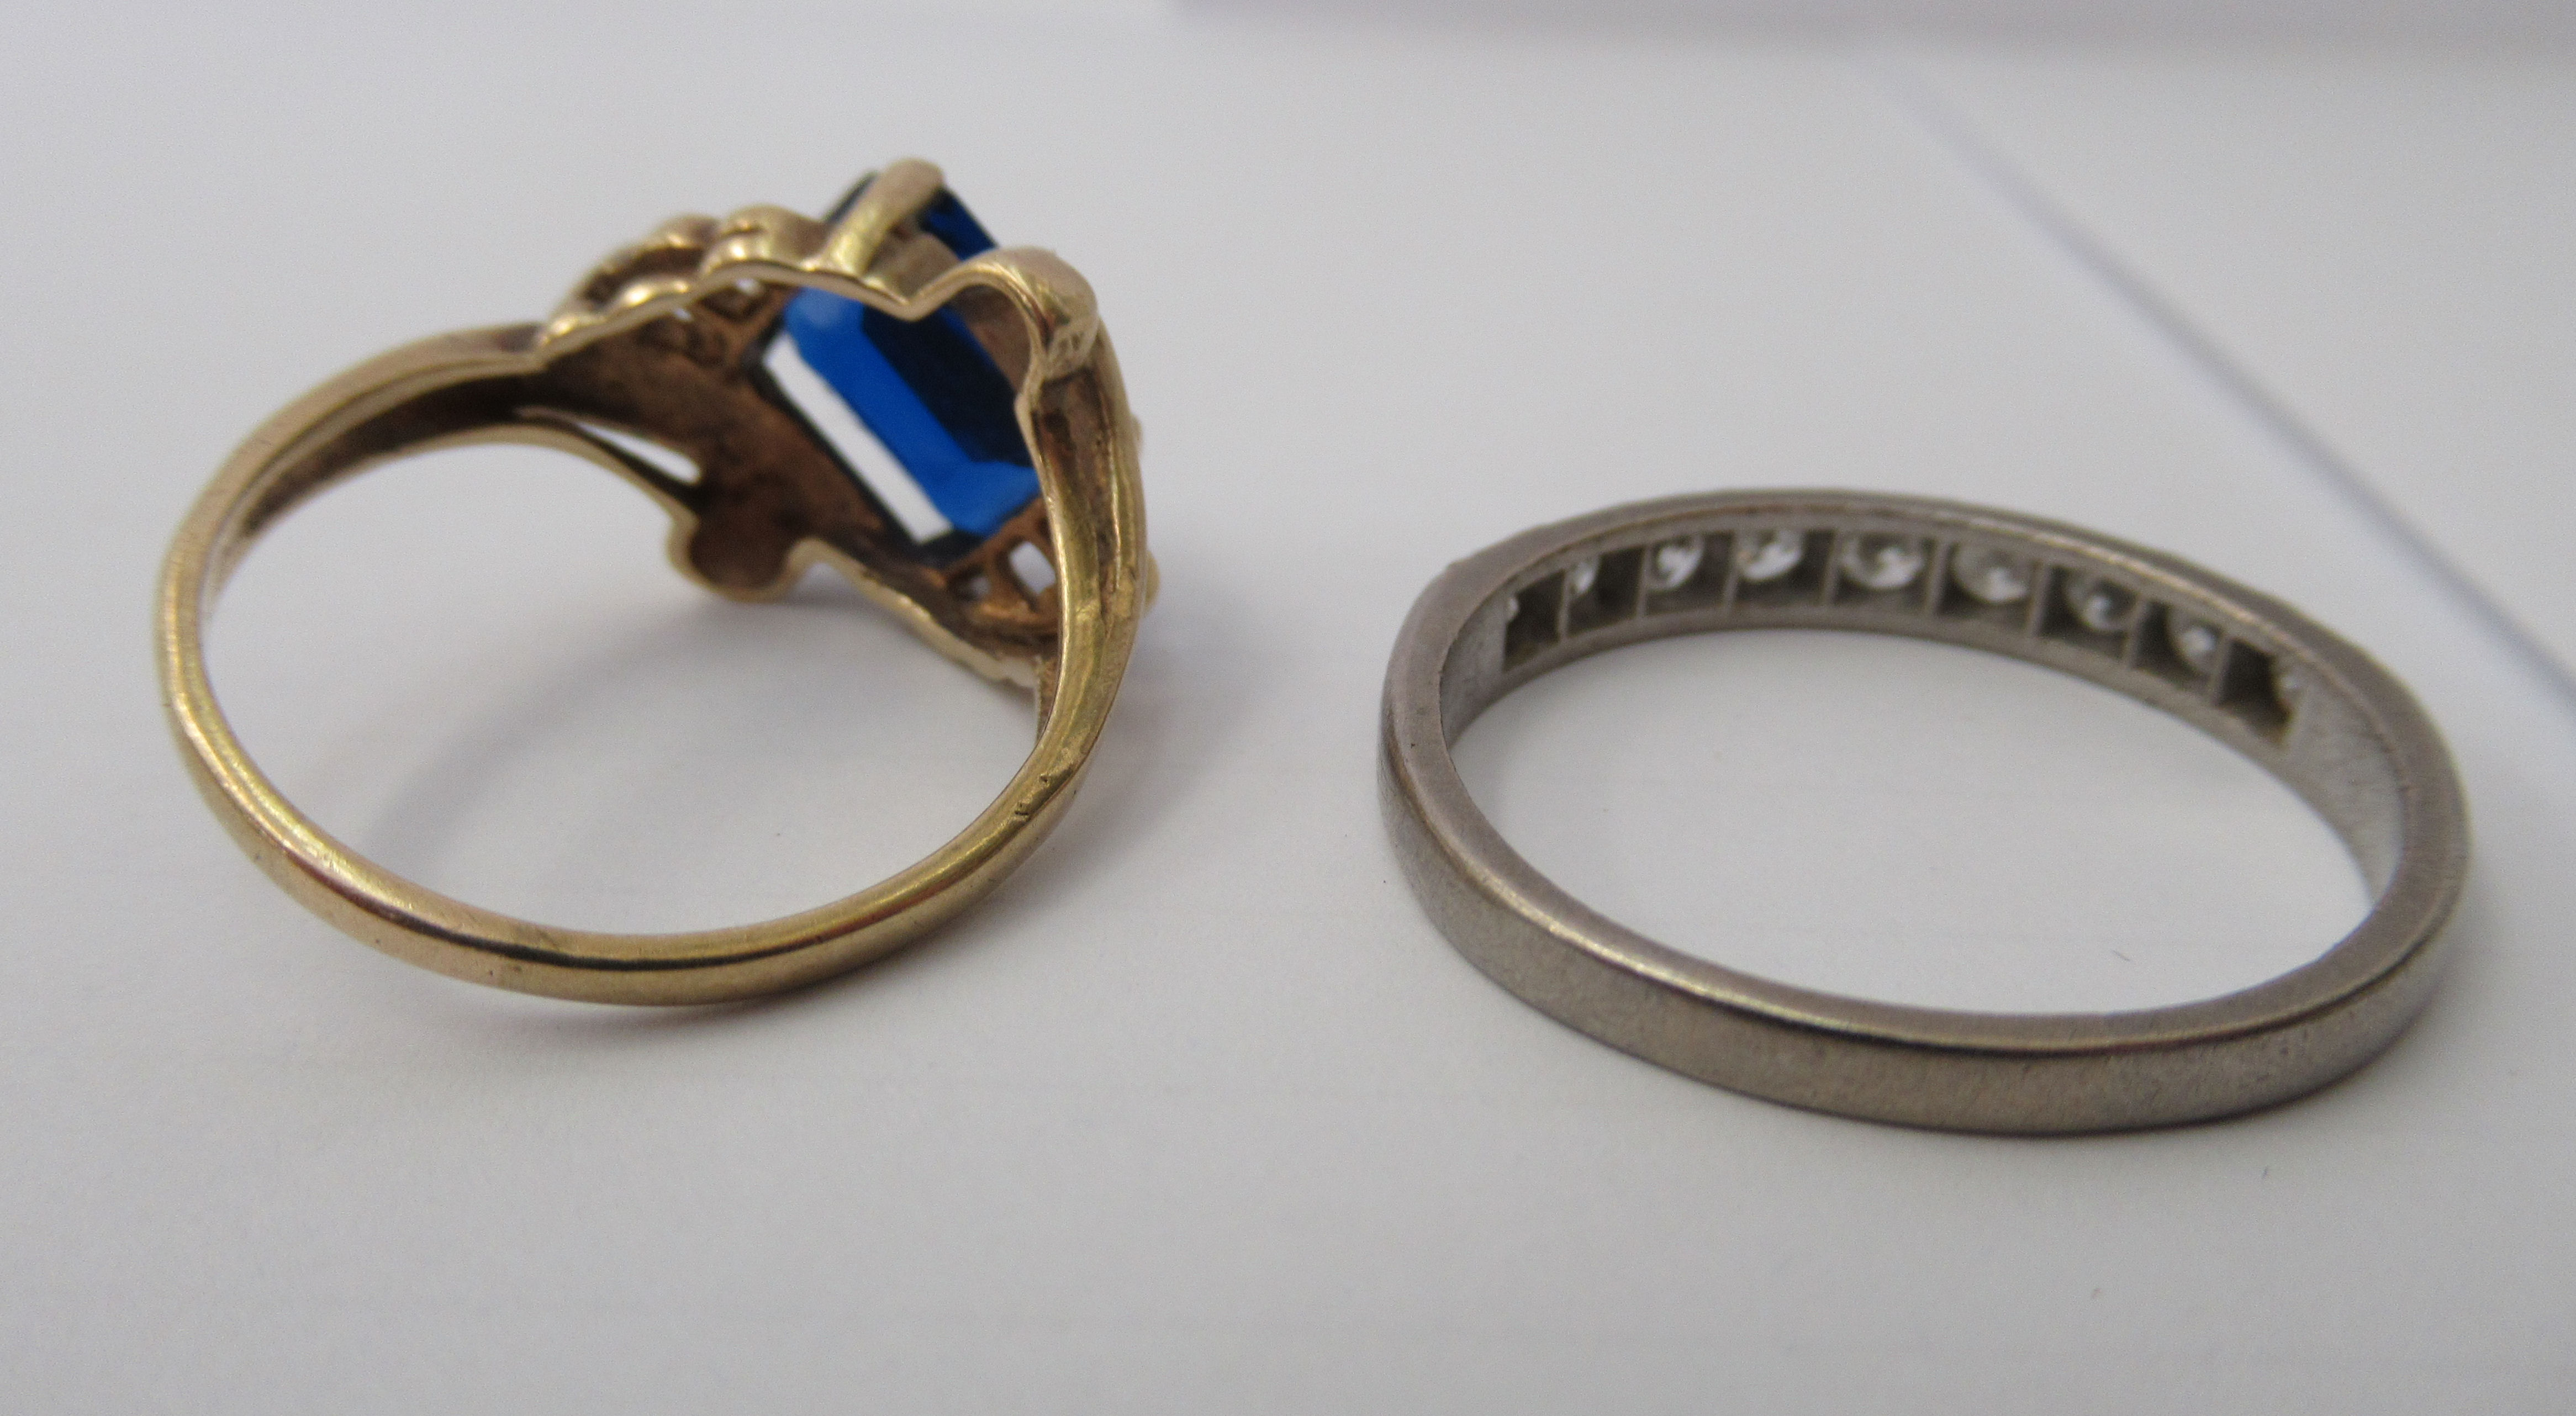 Three yellow metal rings and a white metal coloured ring, set with simulated pearls, opals and other - Image 2 of 5